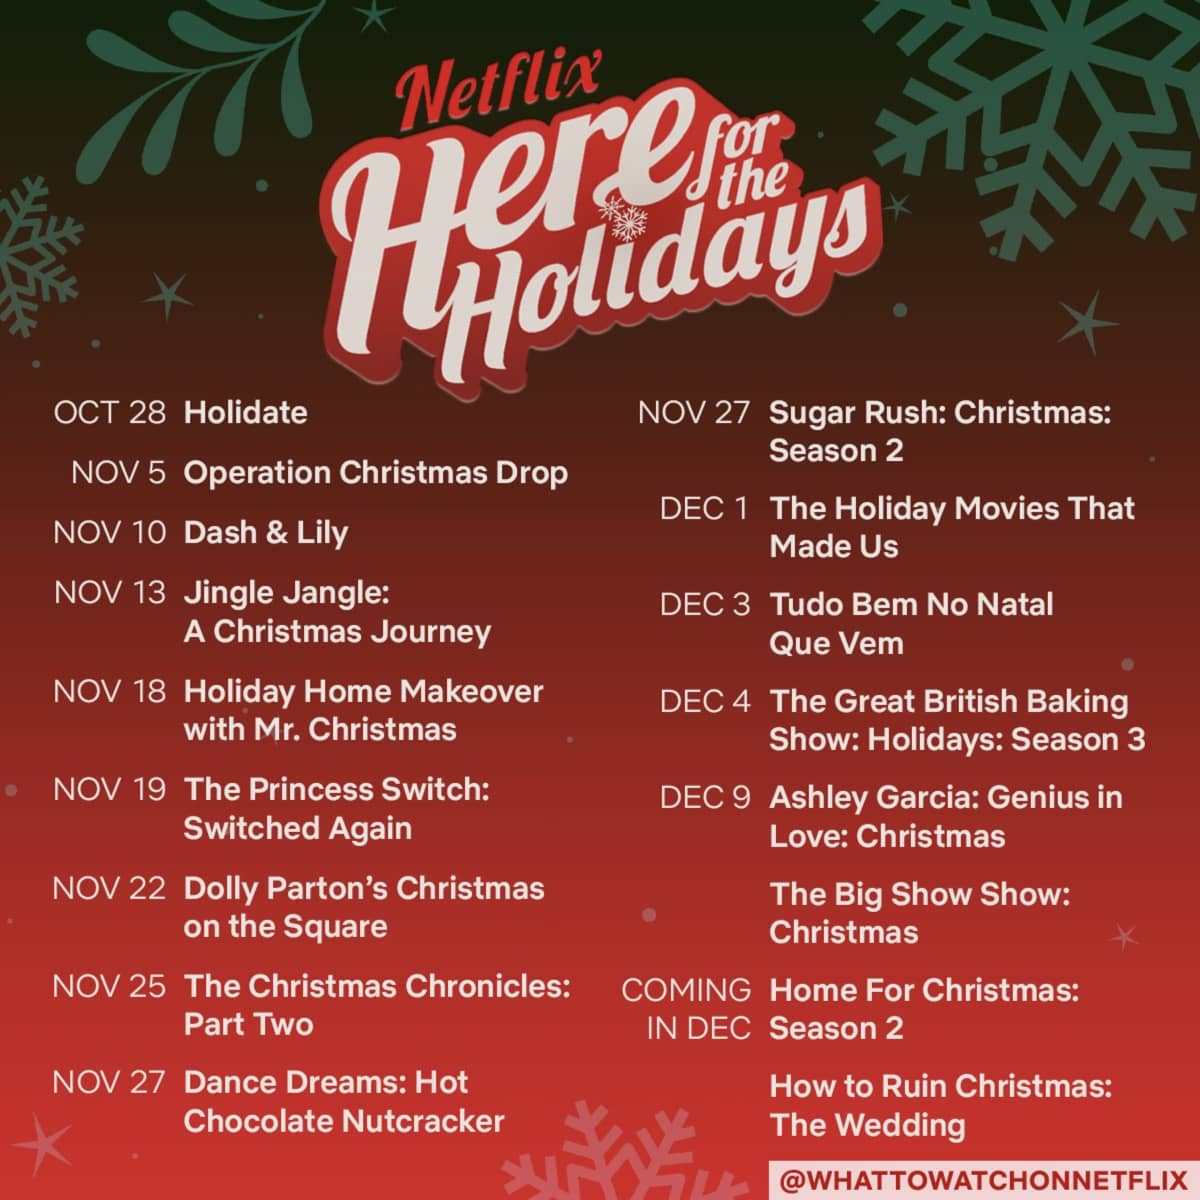 WTW Here for the Holidays201